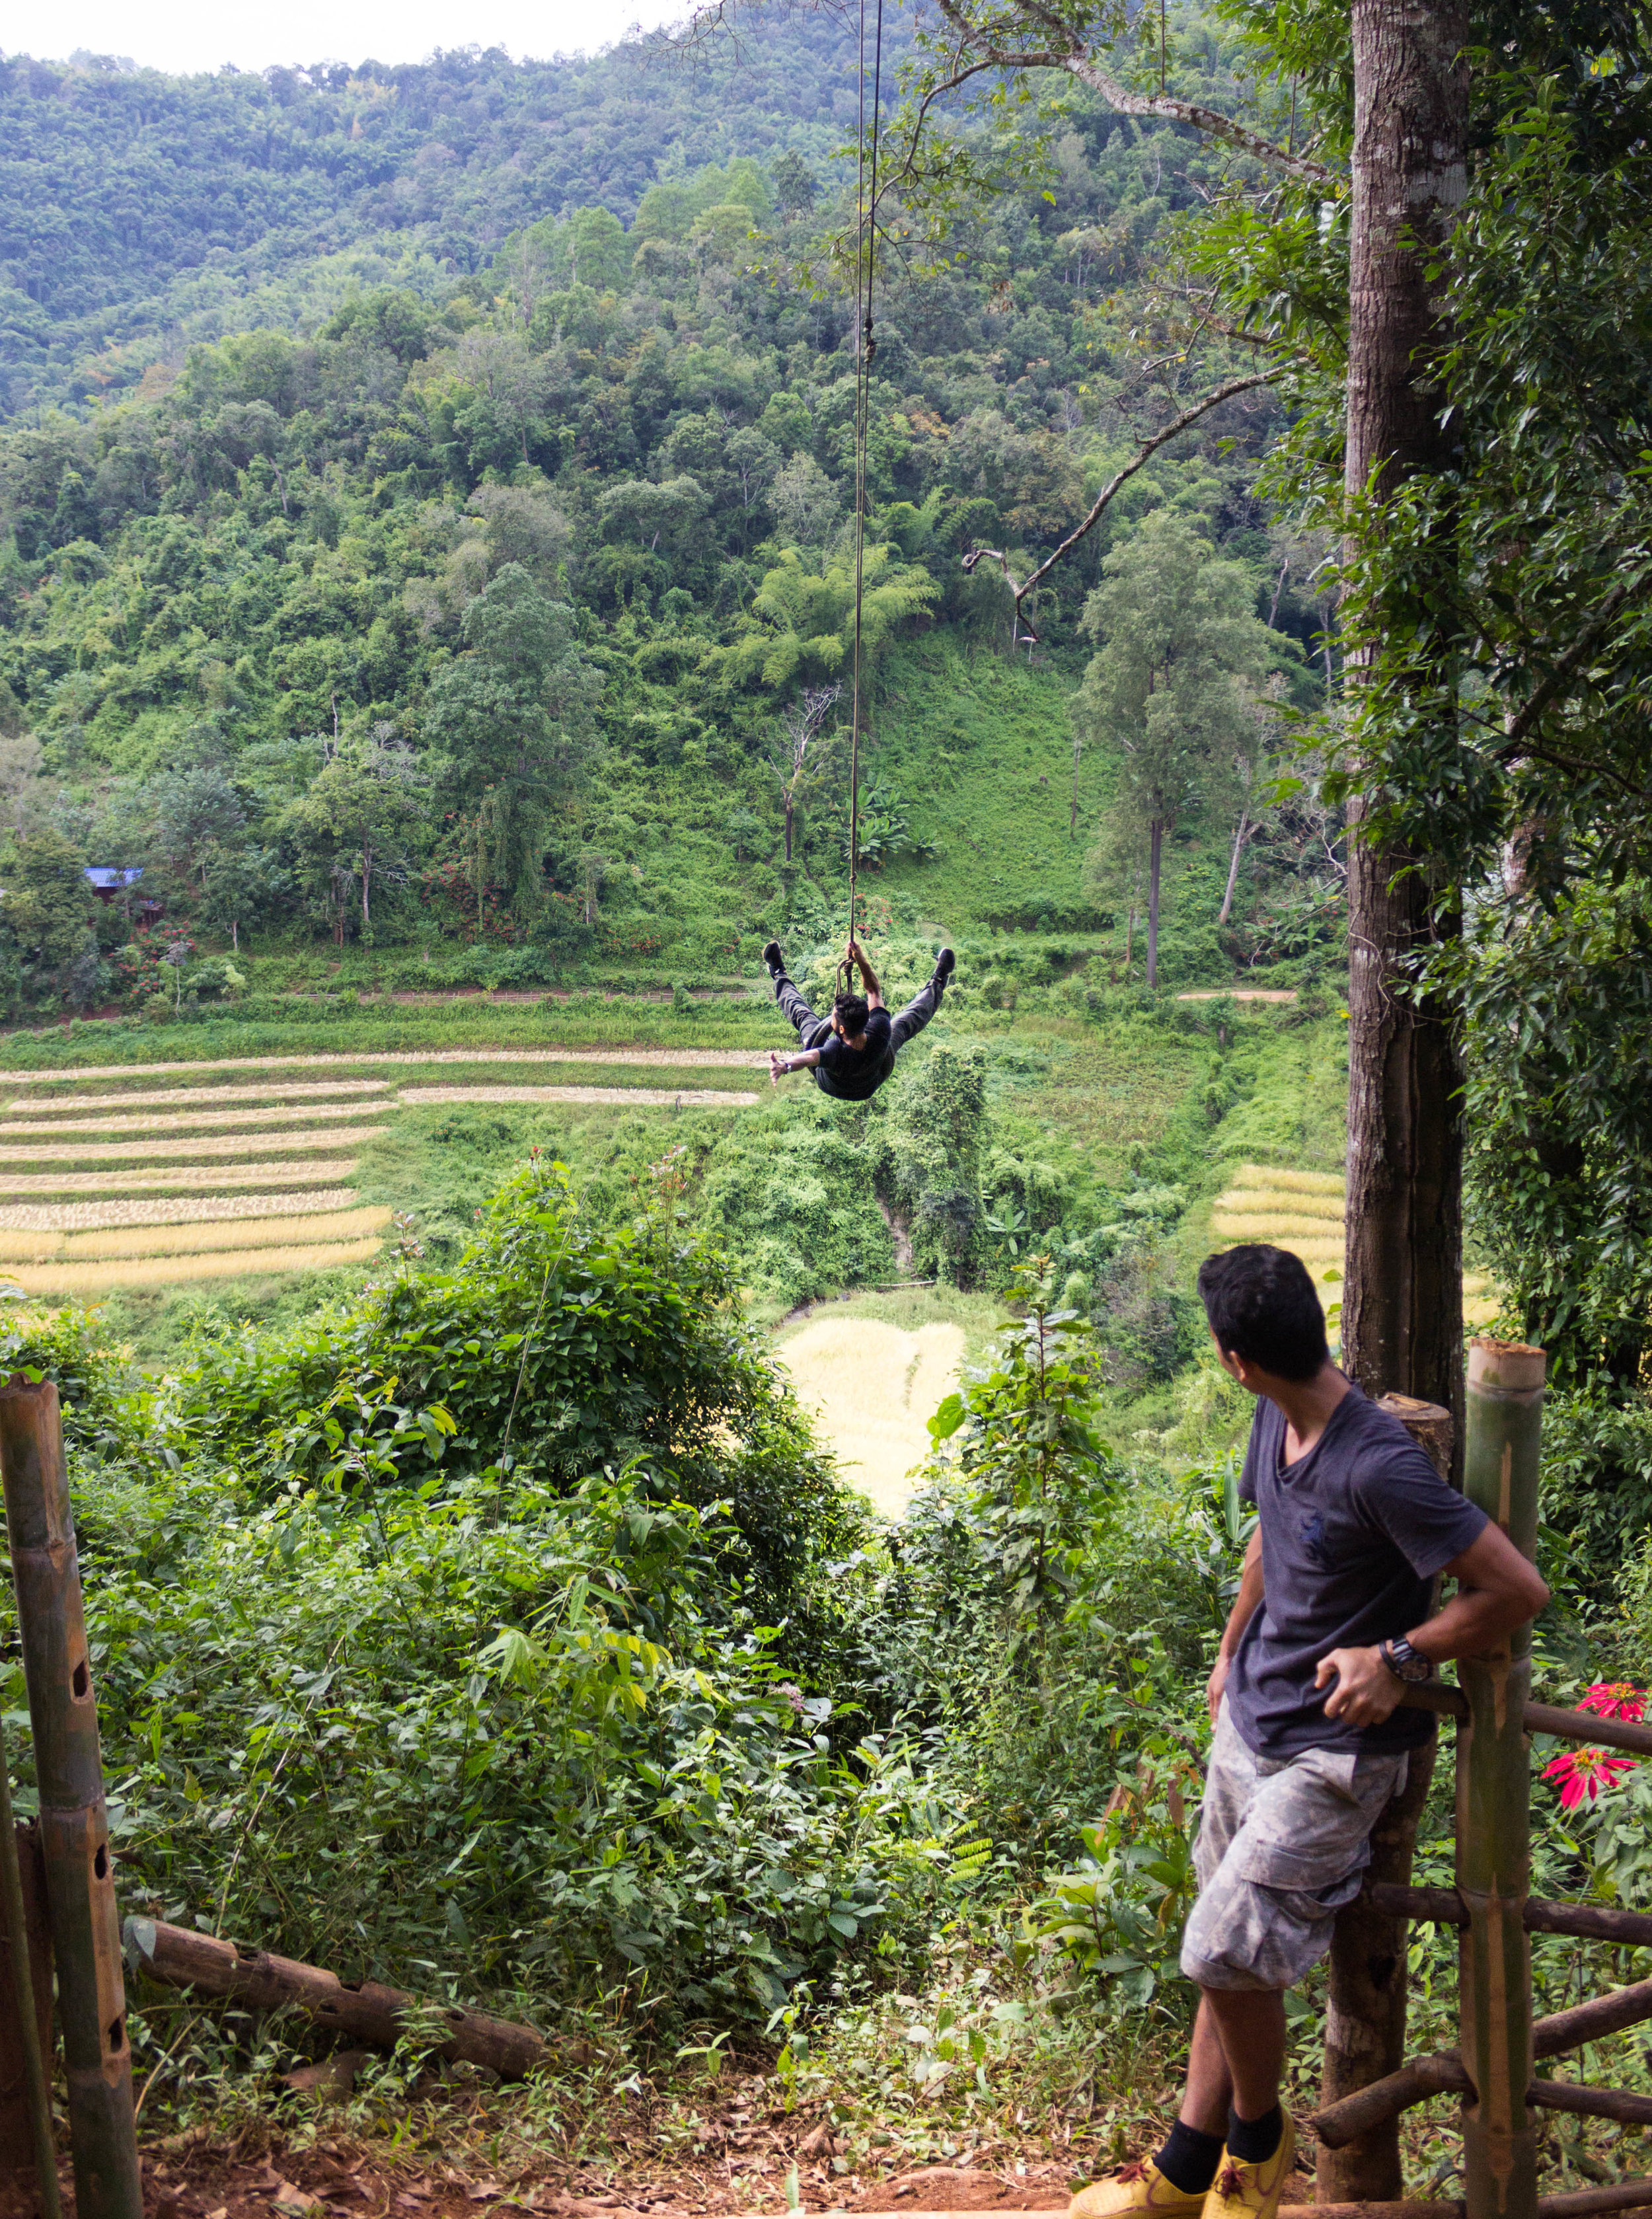 A tire swing above the village's rice fields